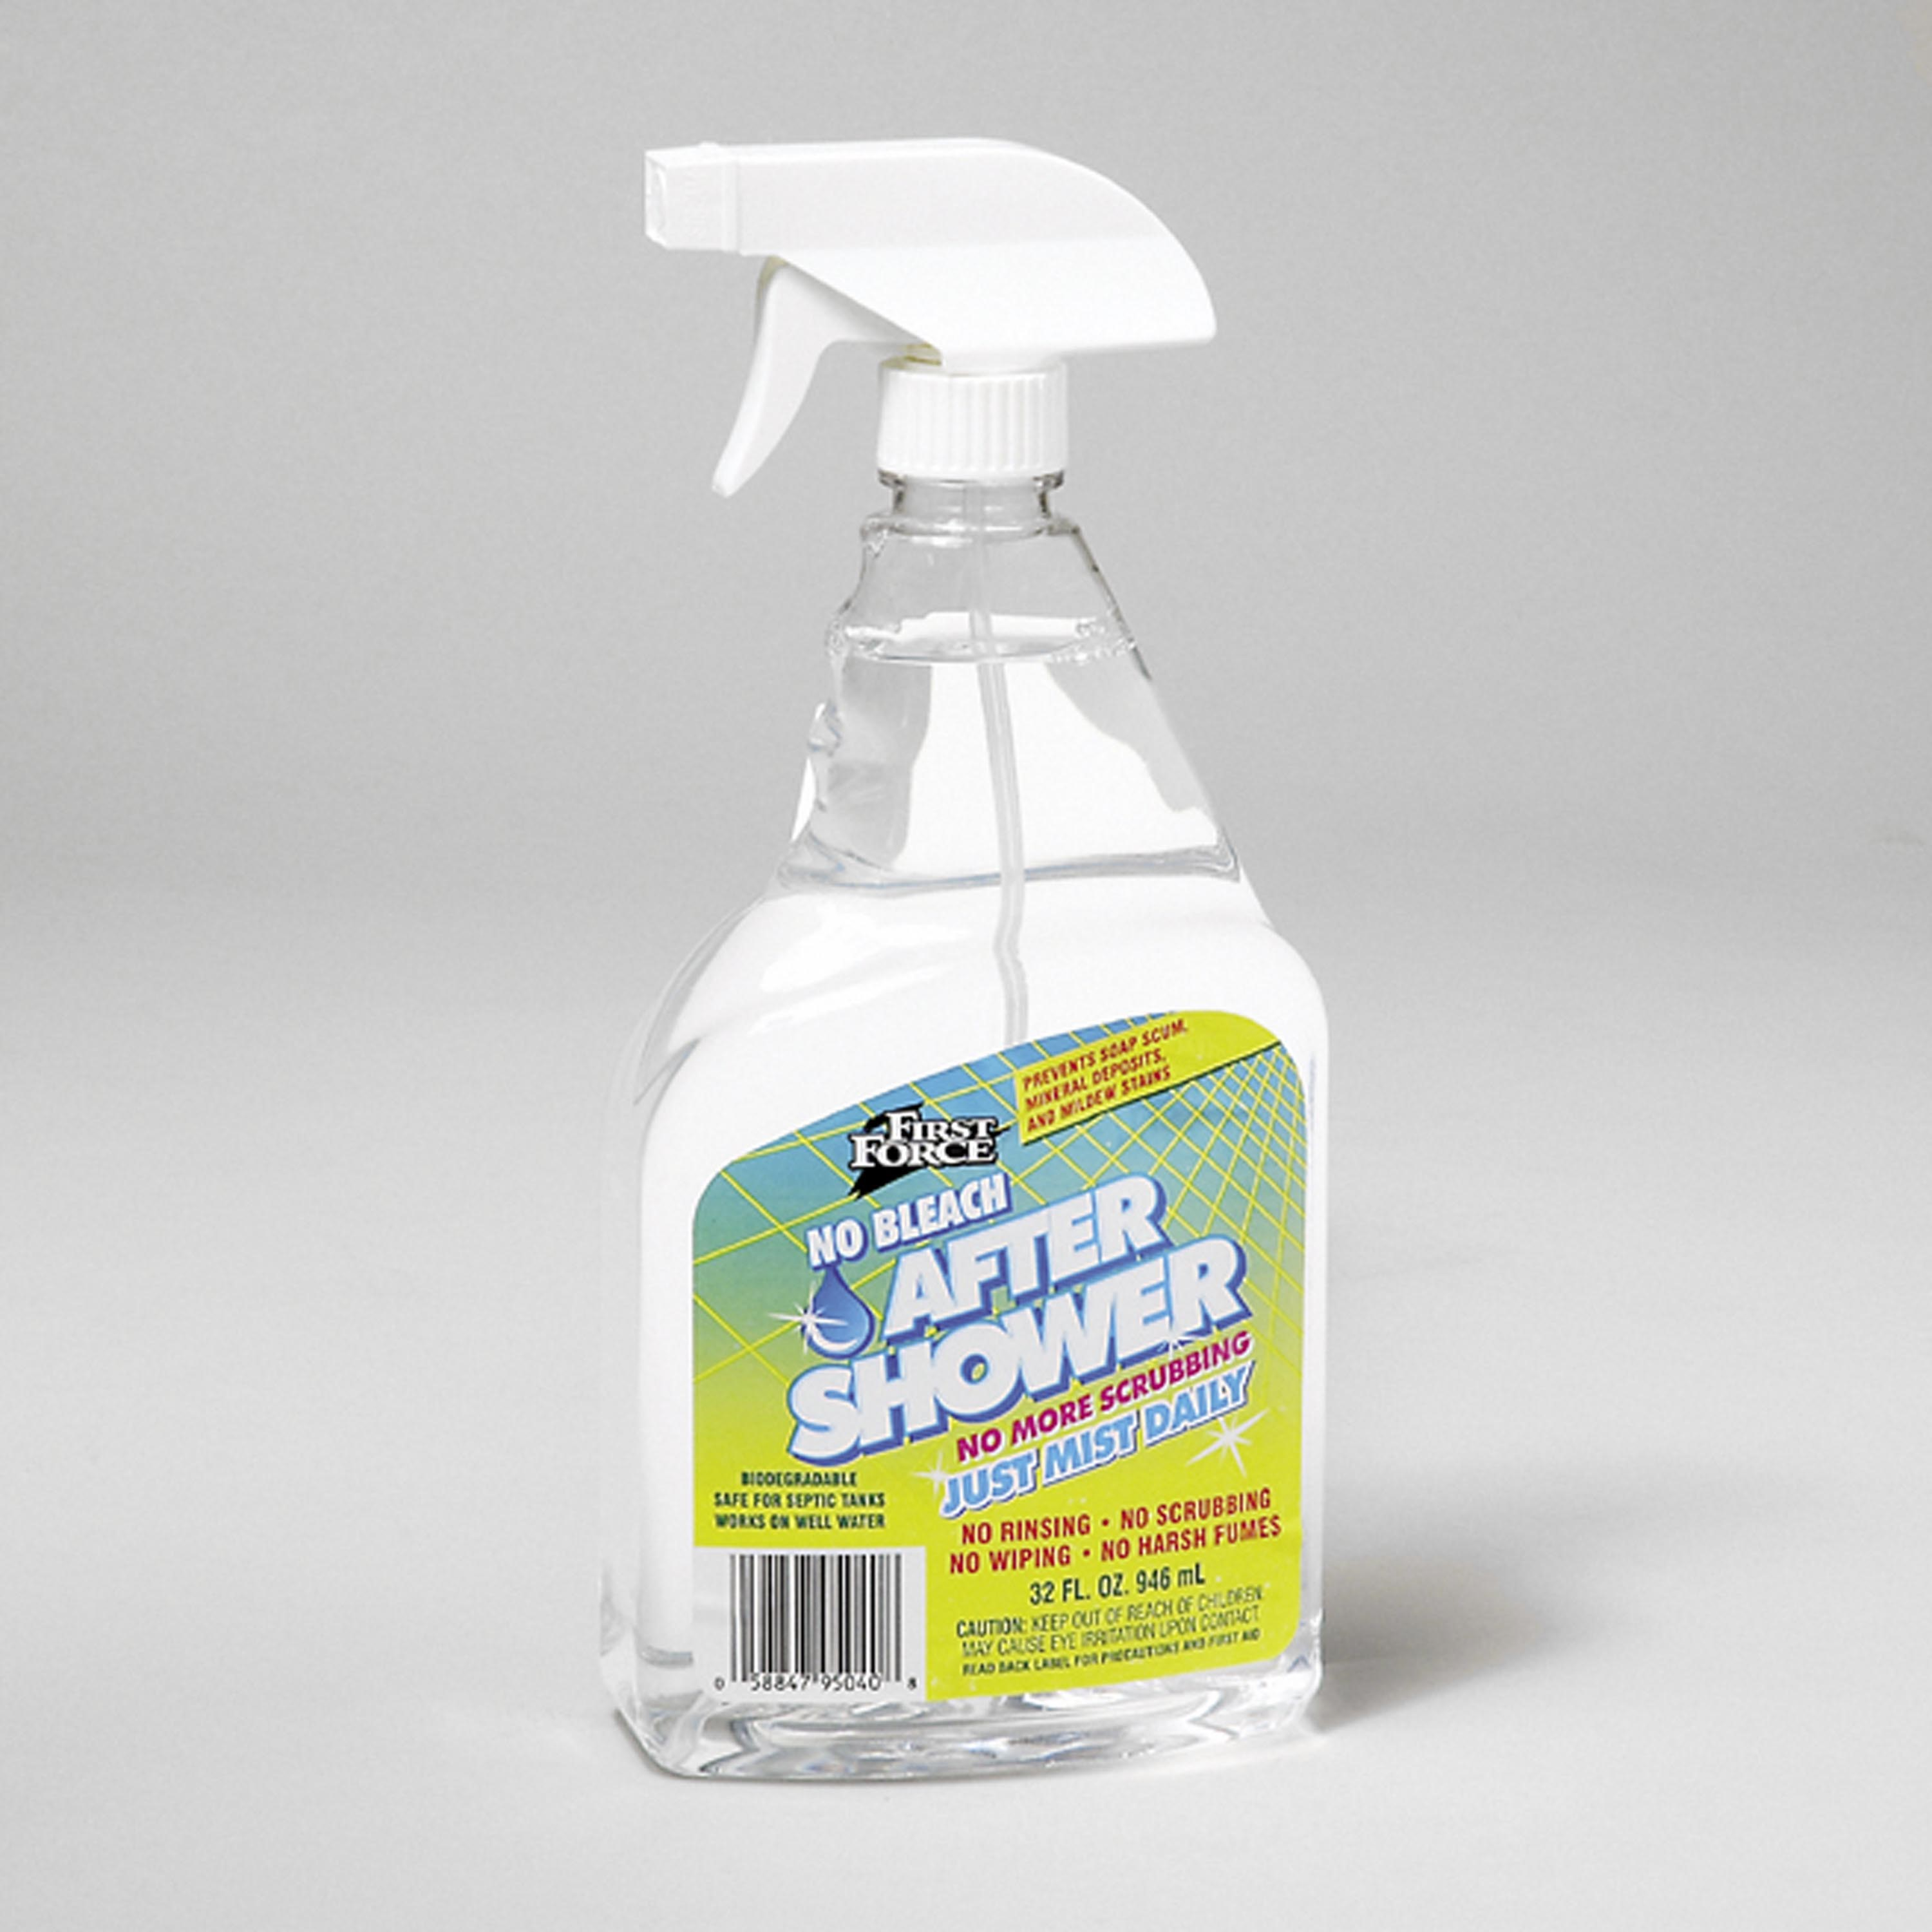 First Force After Shower Daily Shower Cleaner Spray, 32 Oz